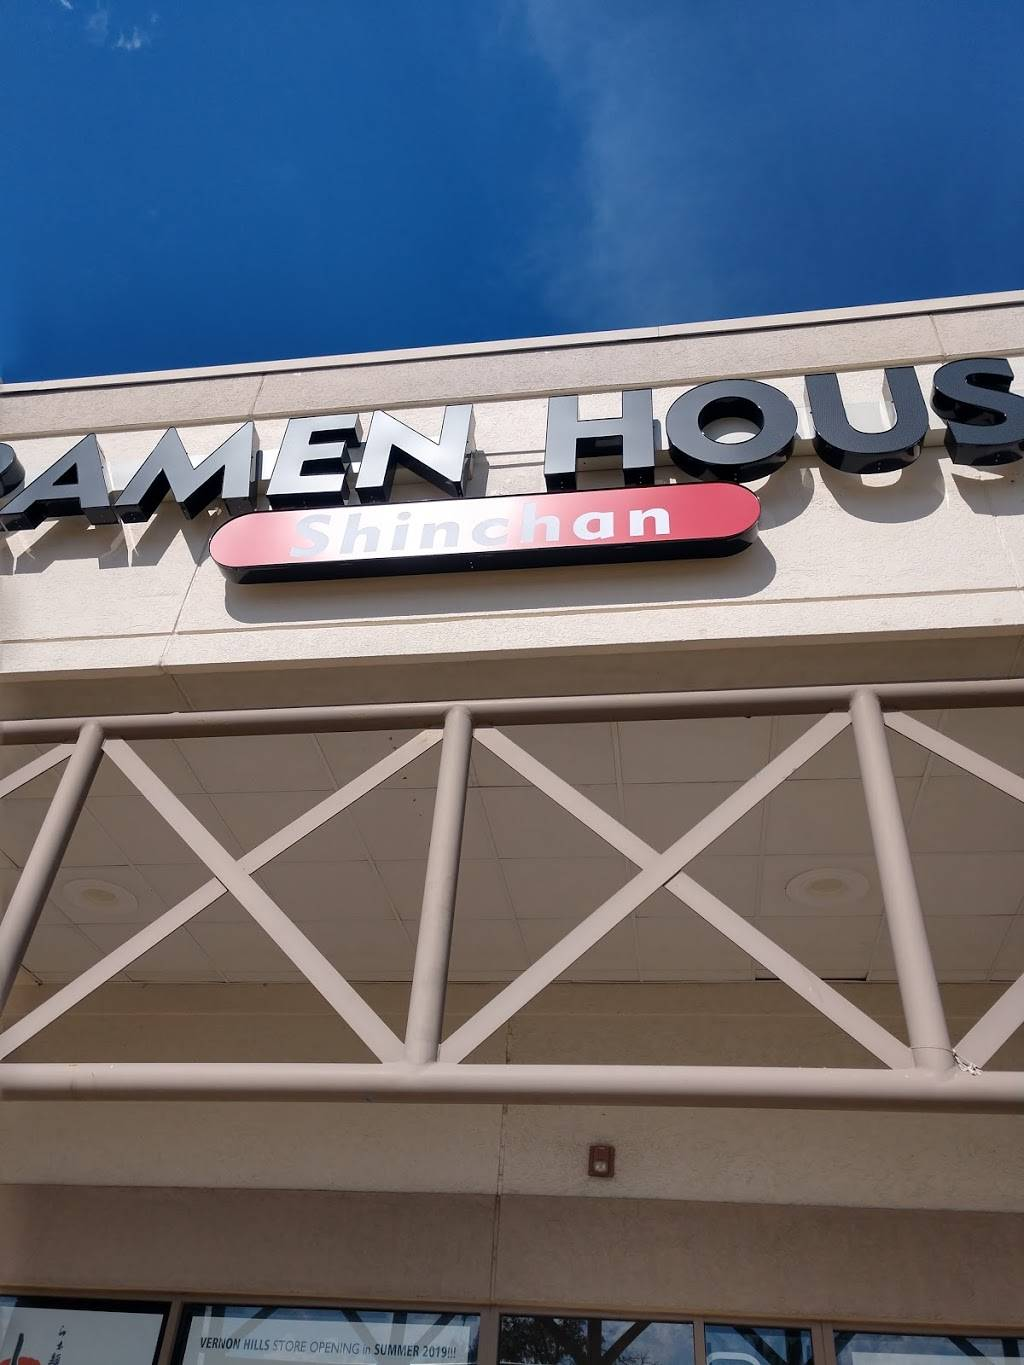 Ramen House Shinchan | restaurant | 700 Milwaukee Ave, Vernon Hills, IL 60061, USA | 8479629654 OR +1 847-962-9654